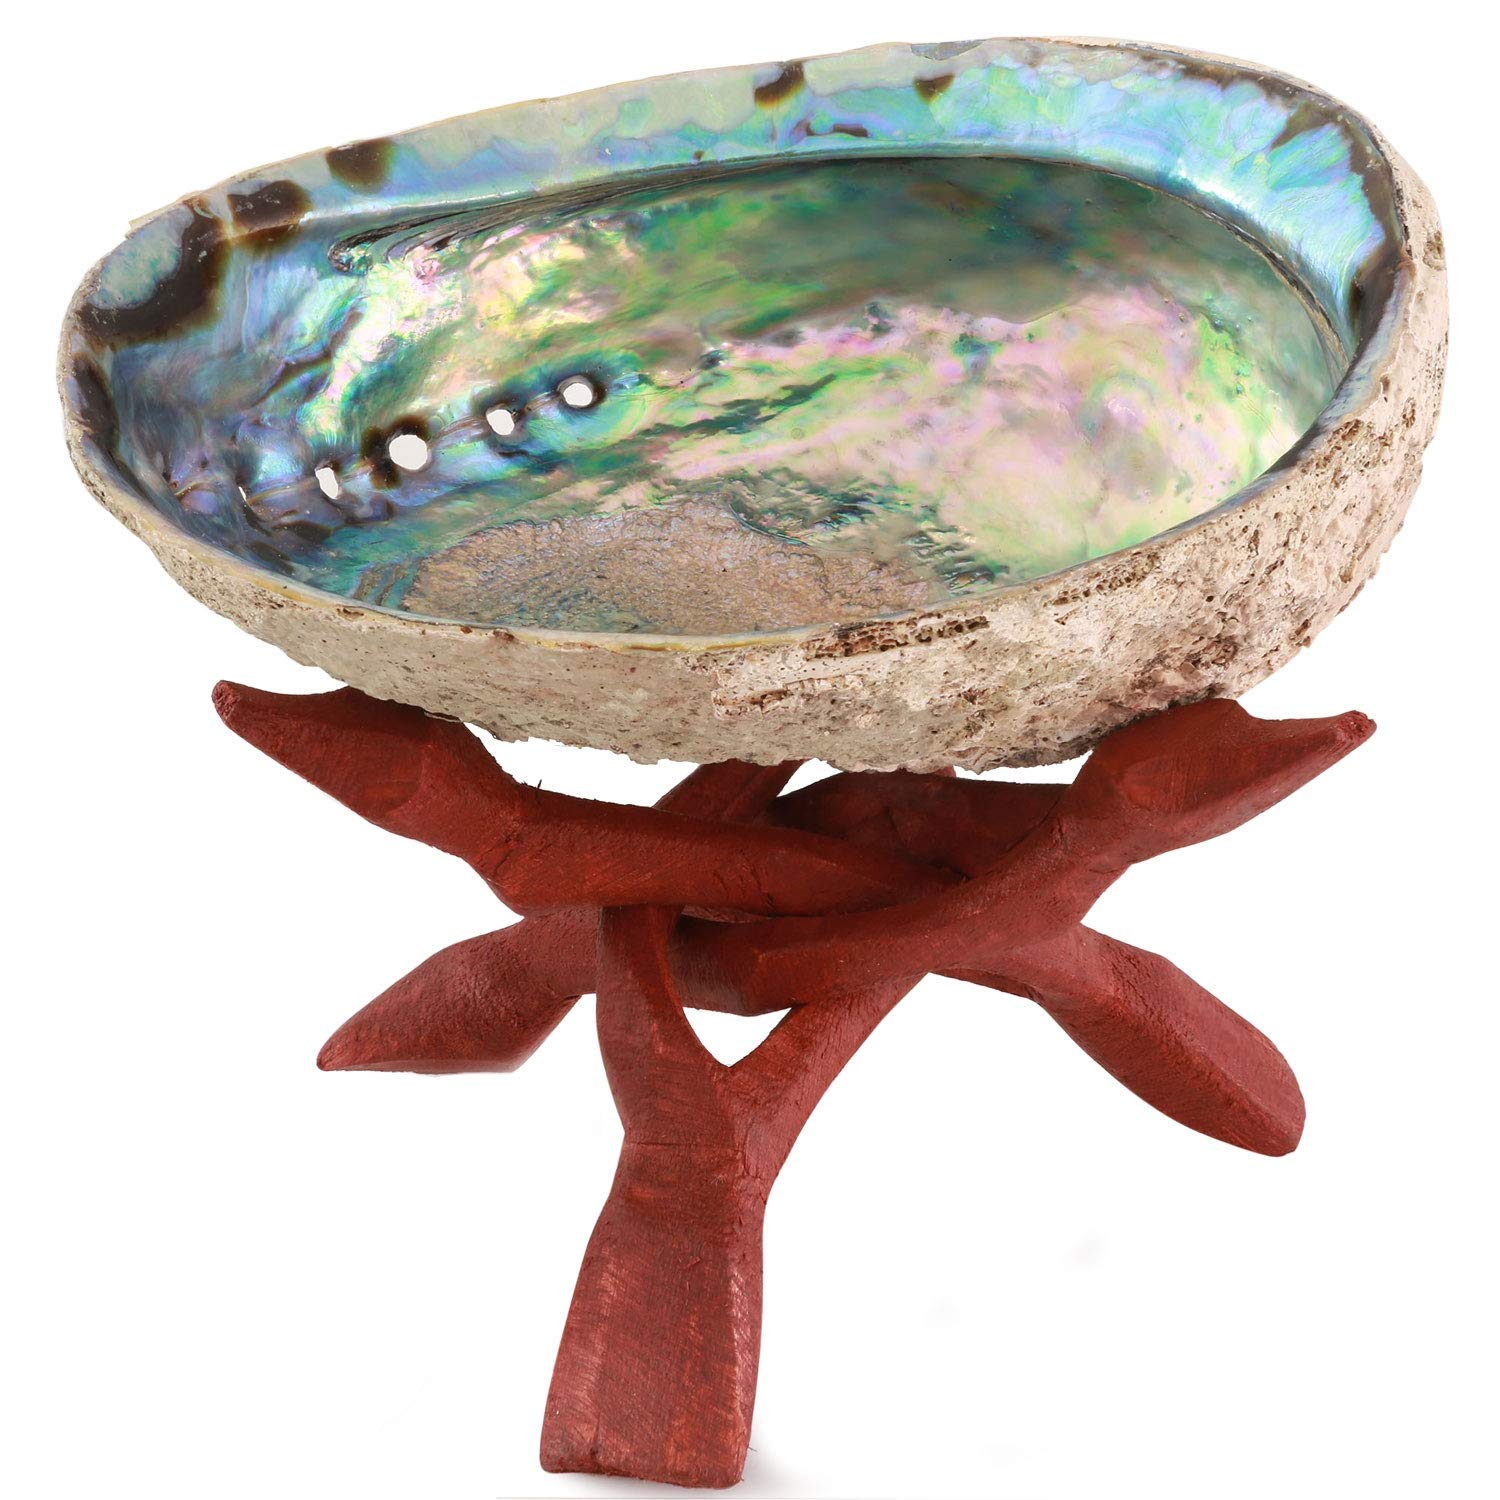 Ocean Shell Studios Premium Natural Abalone Shell Extra Large 6''- 6.5'' with Wooden Stand, for Smudging, Cleansing Home, Meditation, Shell Crafts, Home Décor, 100% Natural, Gift Box by Ocean Shell Studios.